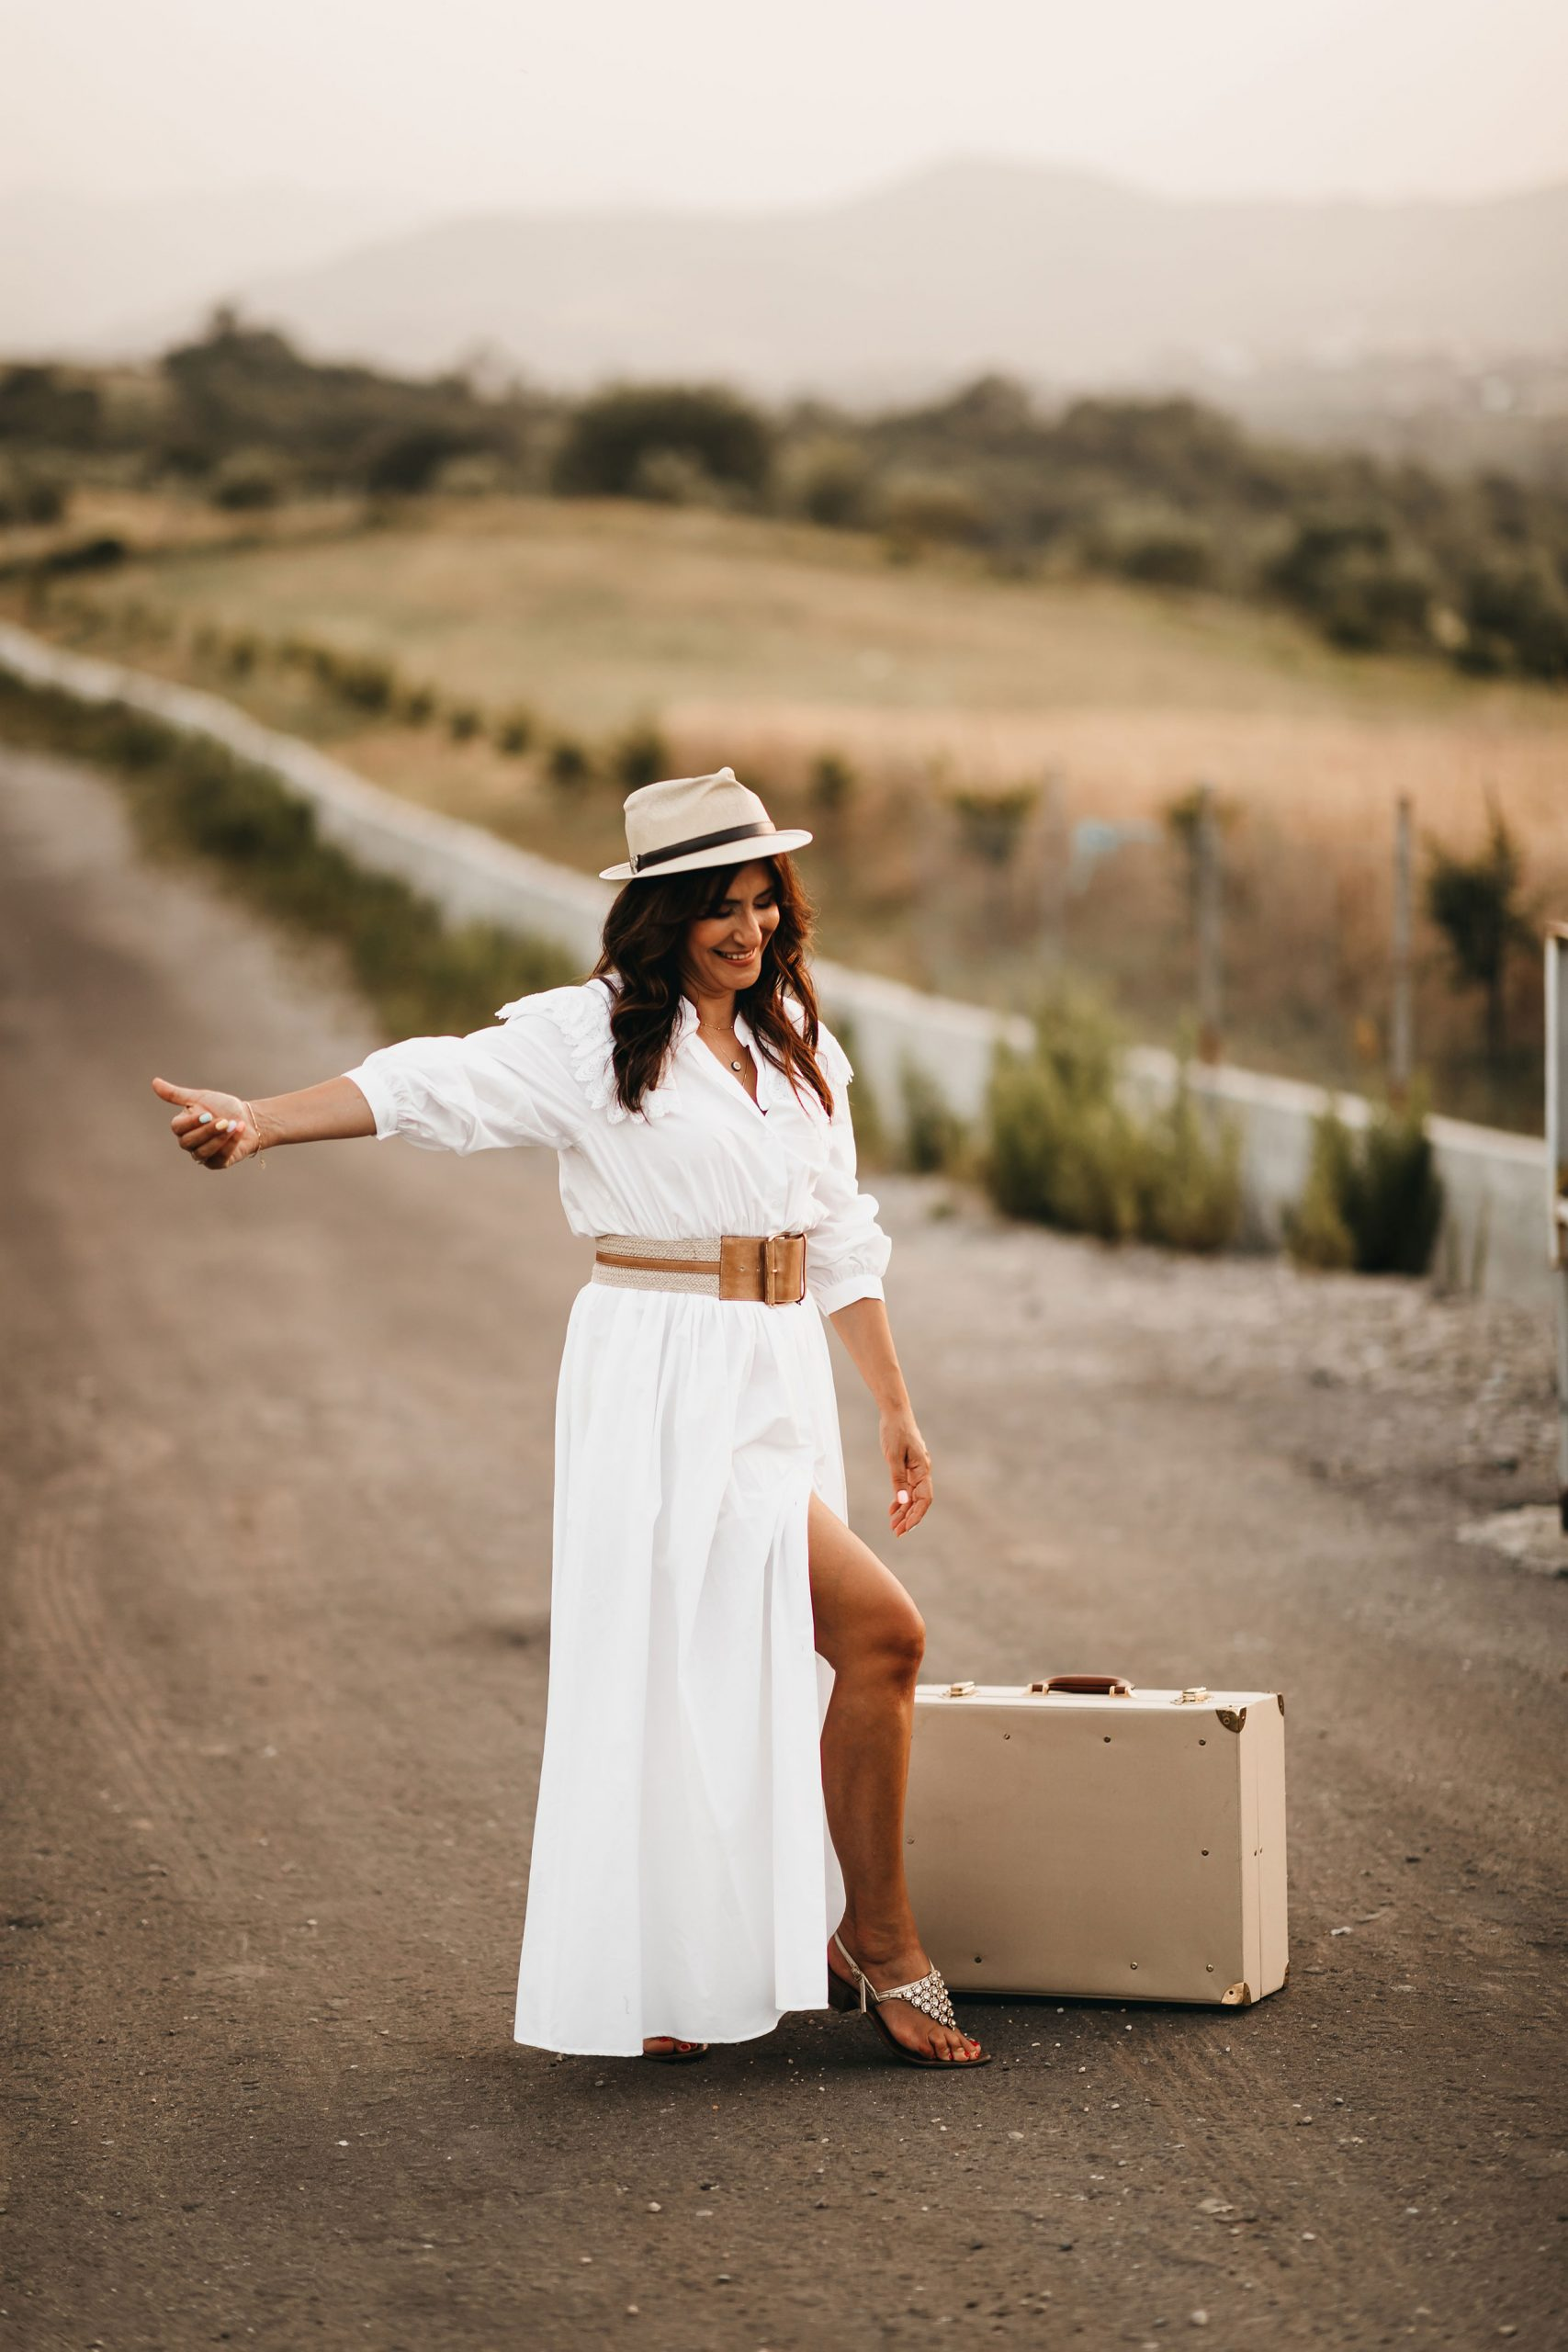 Iva Tico hits the road for the summer nature photoshoot